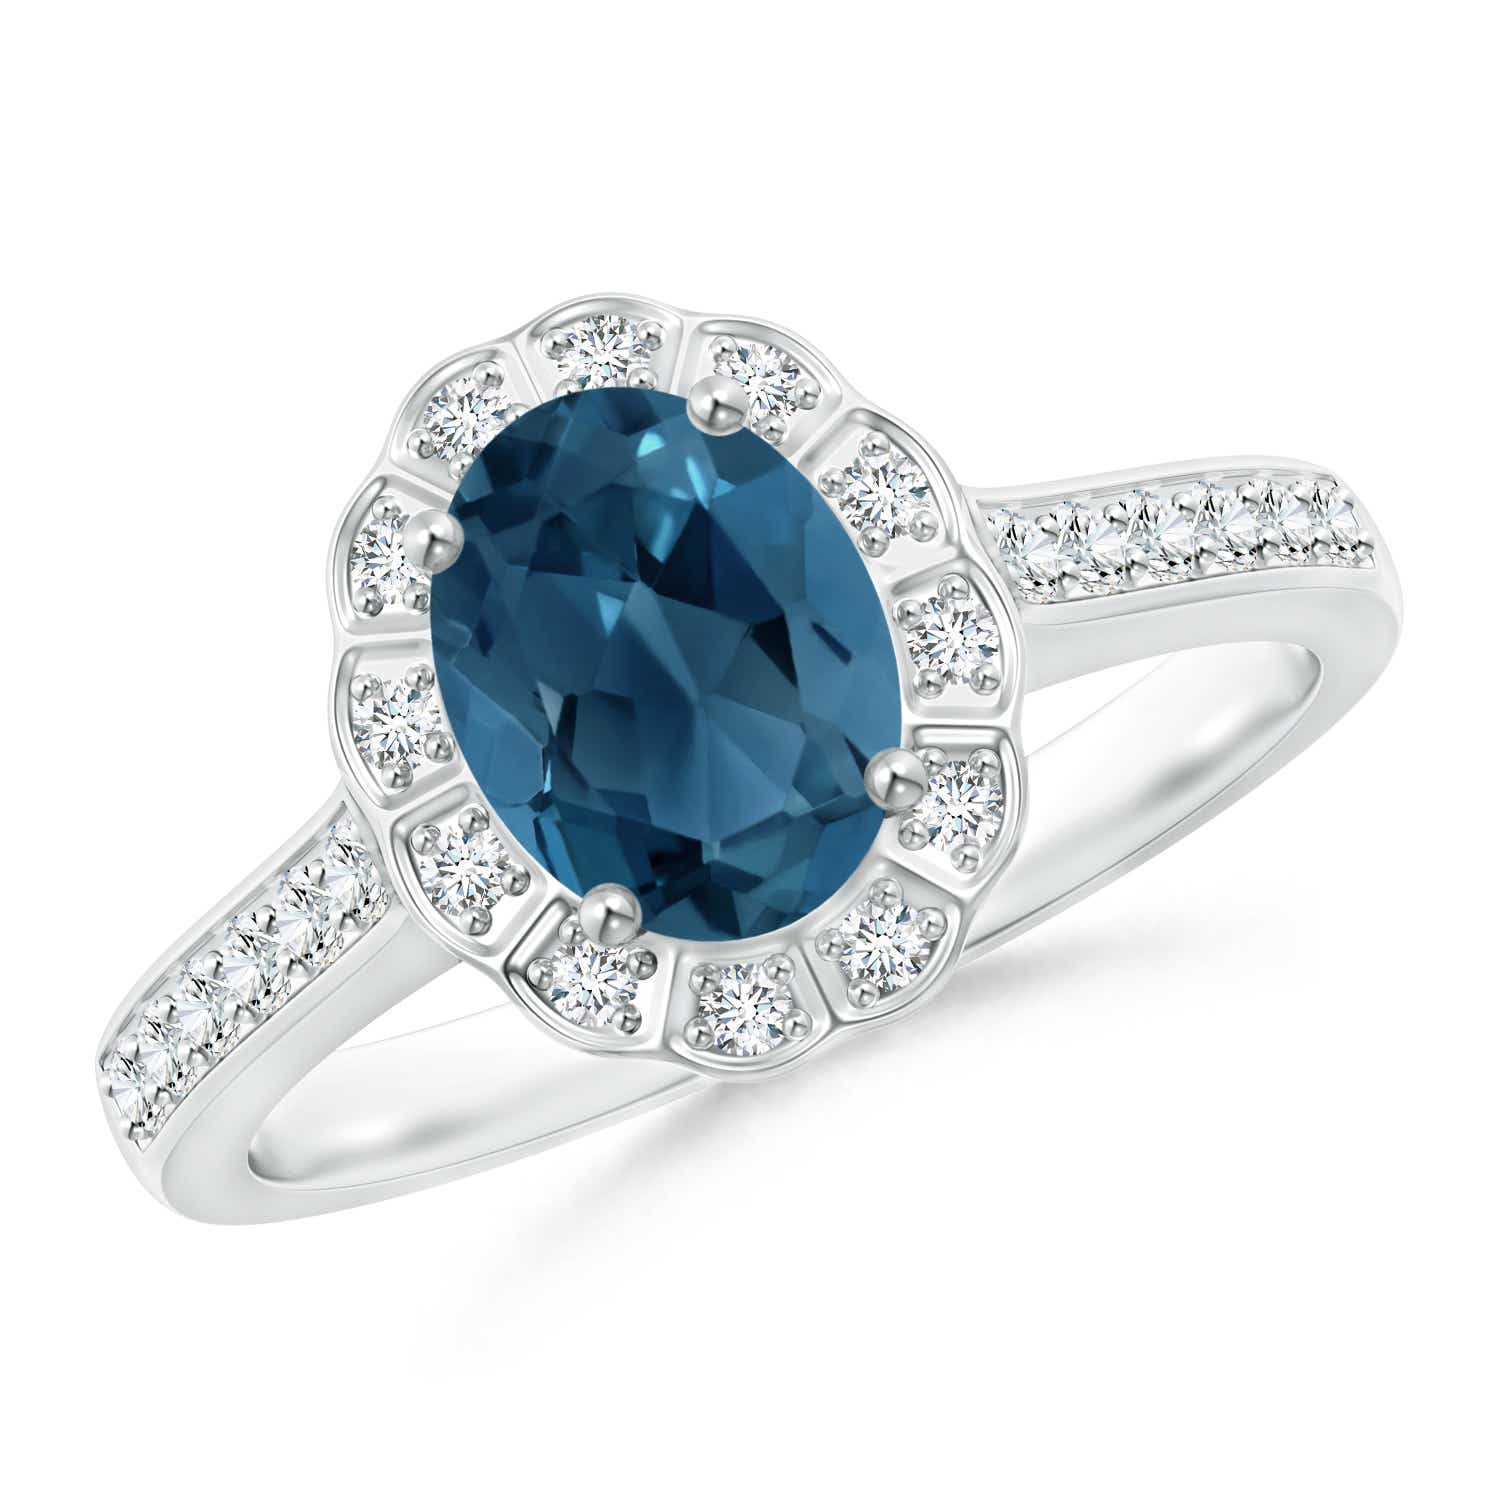 Angara Vintage Style London Blue Topaz Engagement Ring in White Gold O4ef8Yu8fK